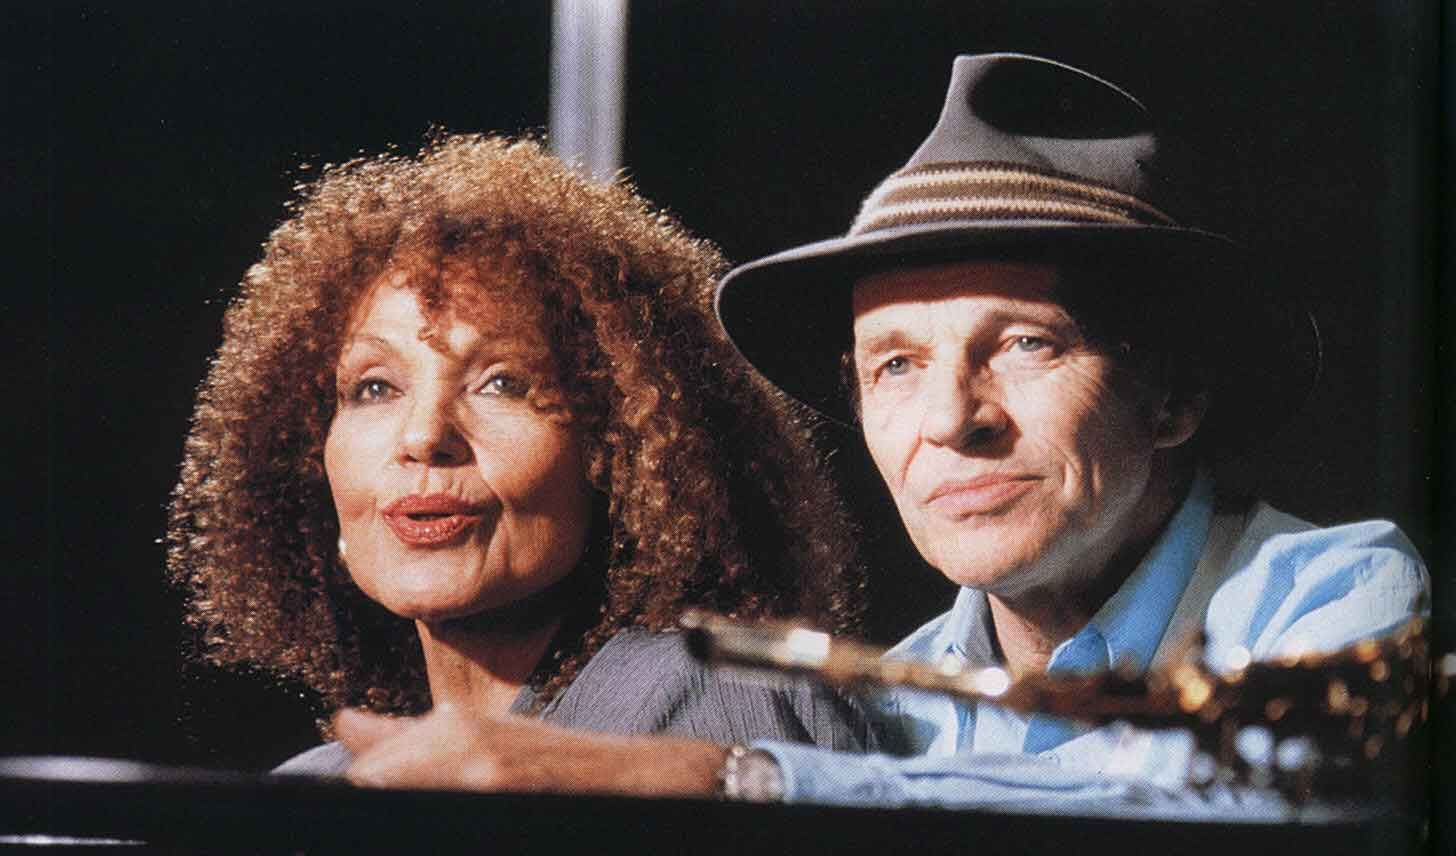 Cleo Laine married John Dankworth and they regularly work together. Photograph by Redferns